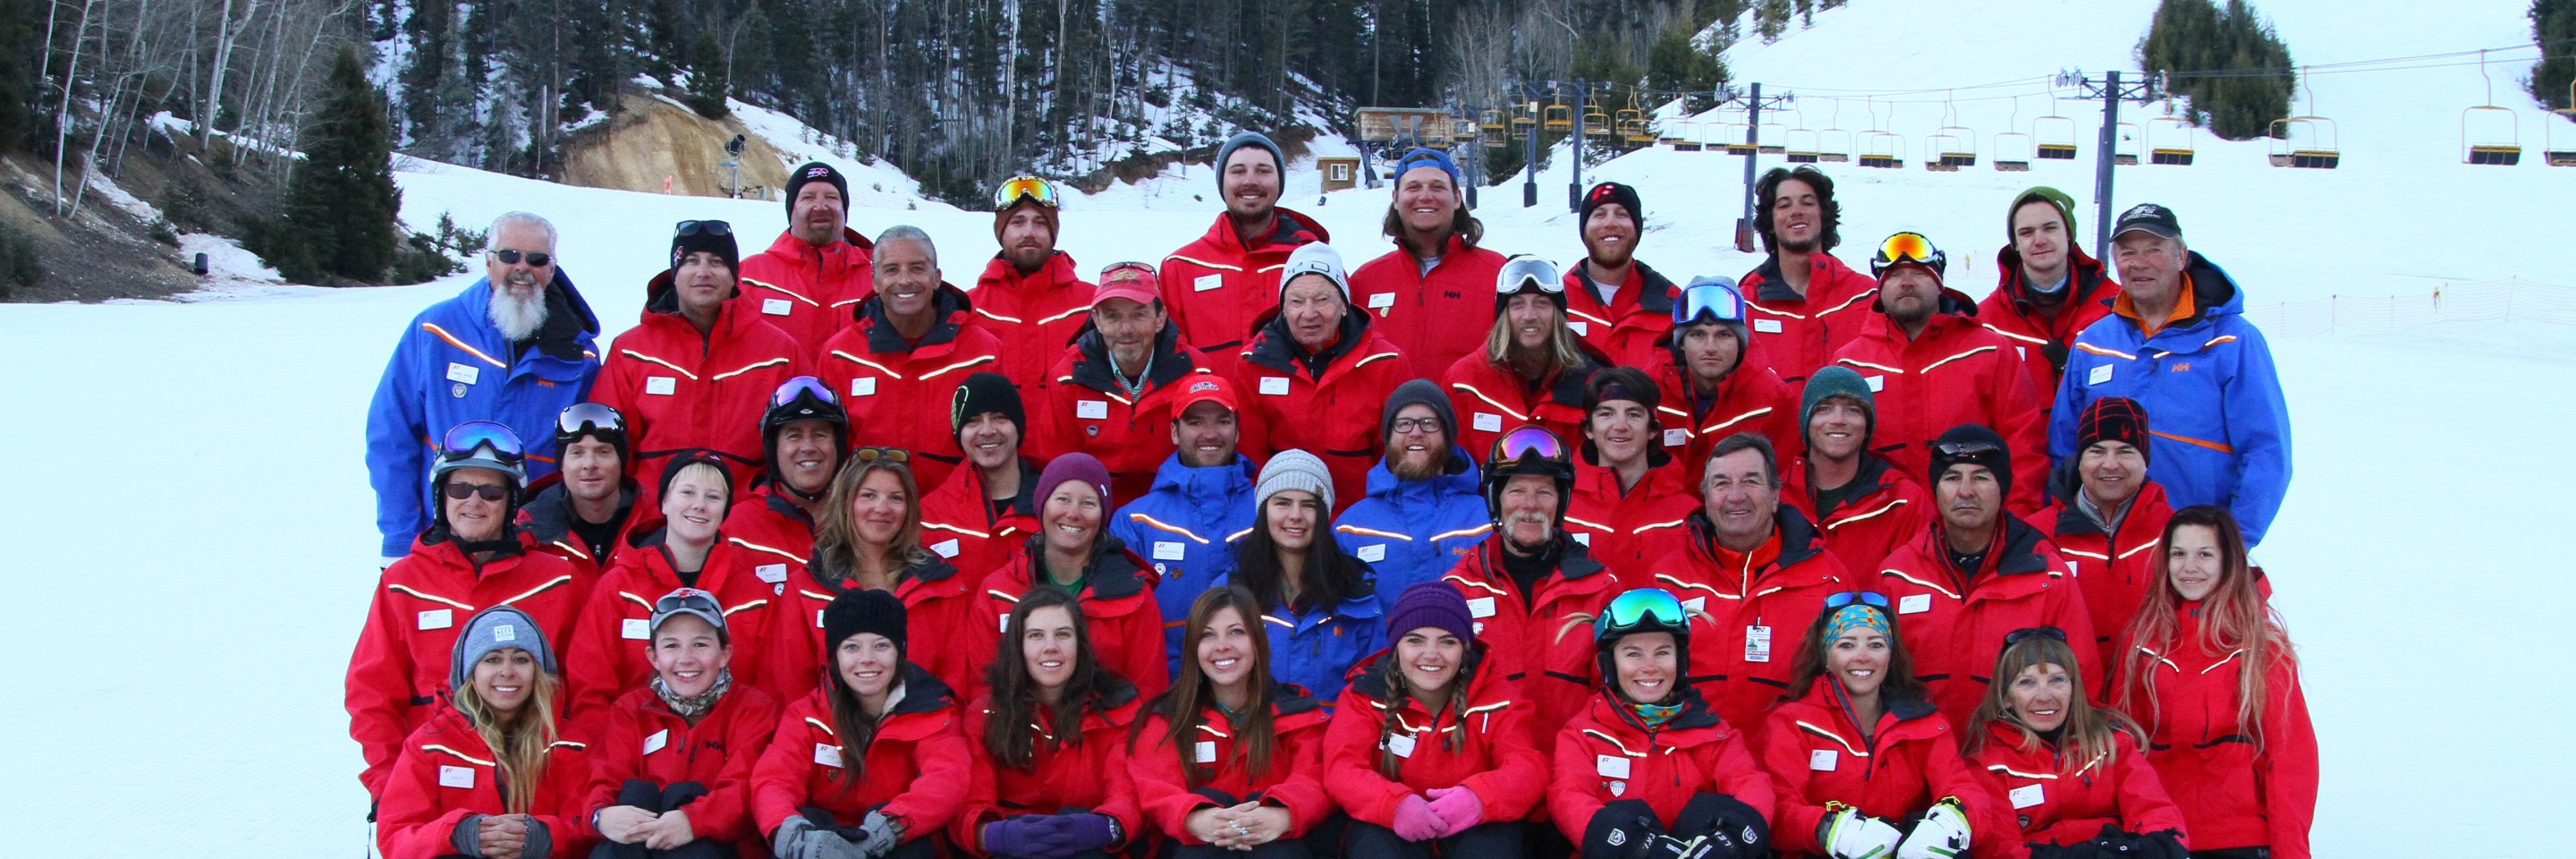 ski coaches promoting employment and good jobs in New Mexico